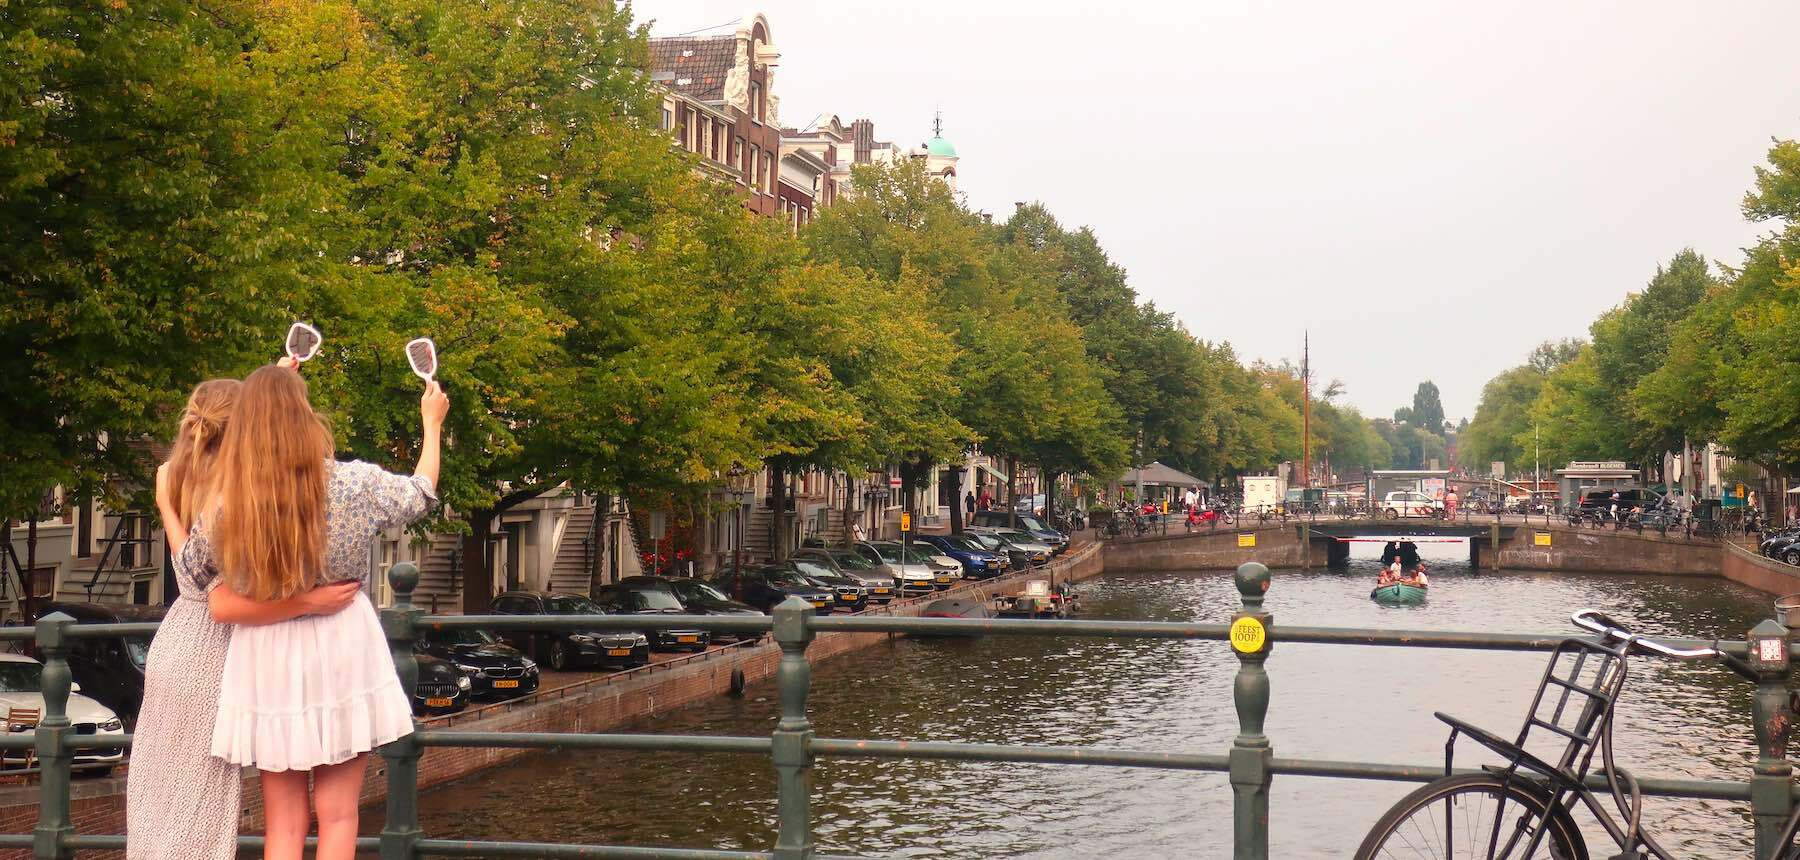 10 Reasons Not To Take A Free Walking Tour In Amsterdam